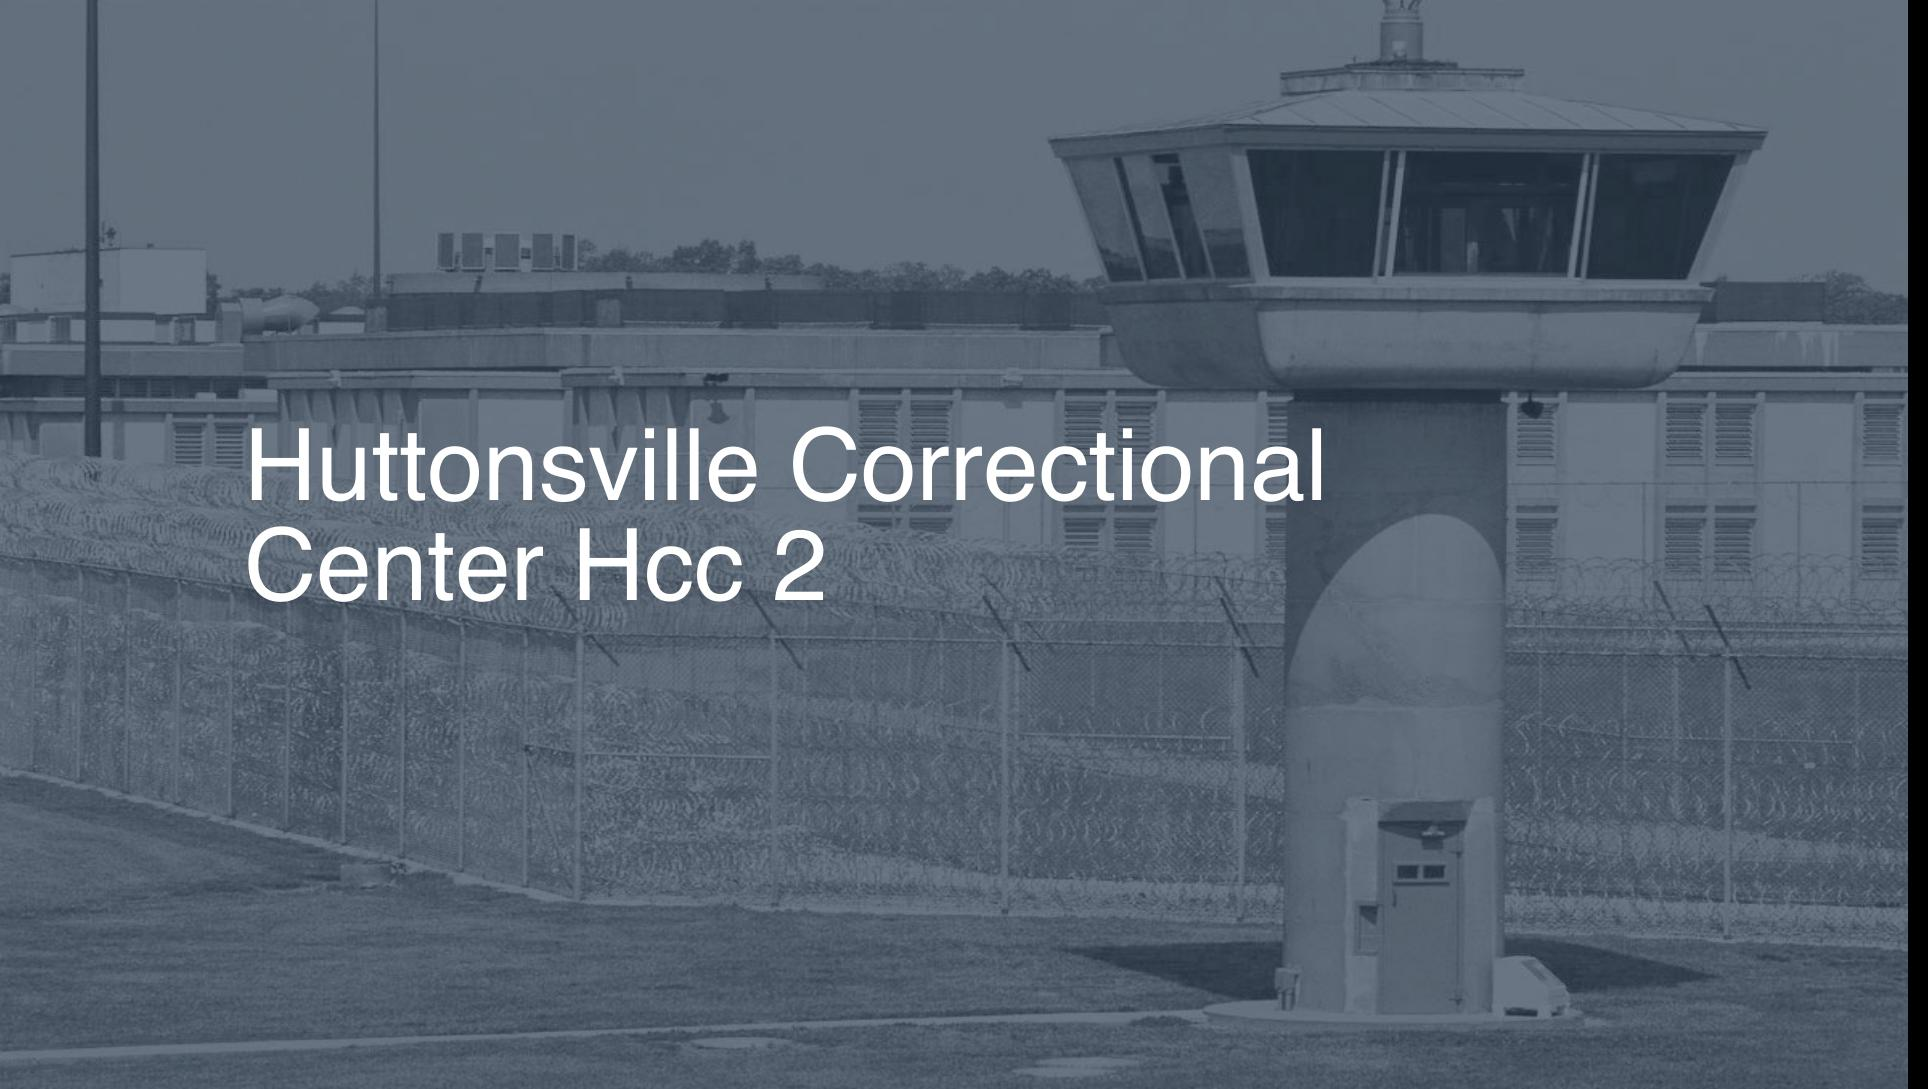 Huttonsville Correctional Center (HCC)   Pigeonly - Inmate